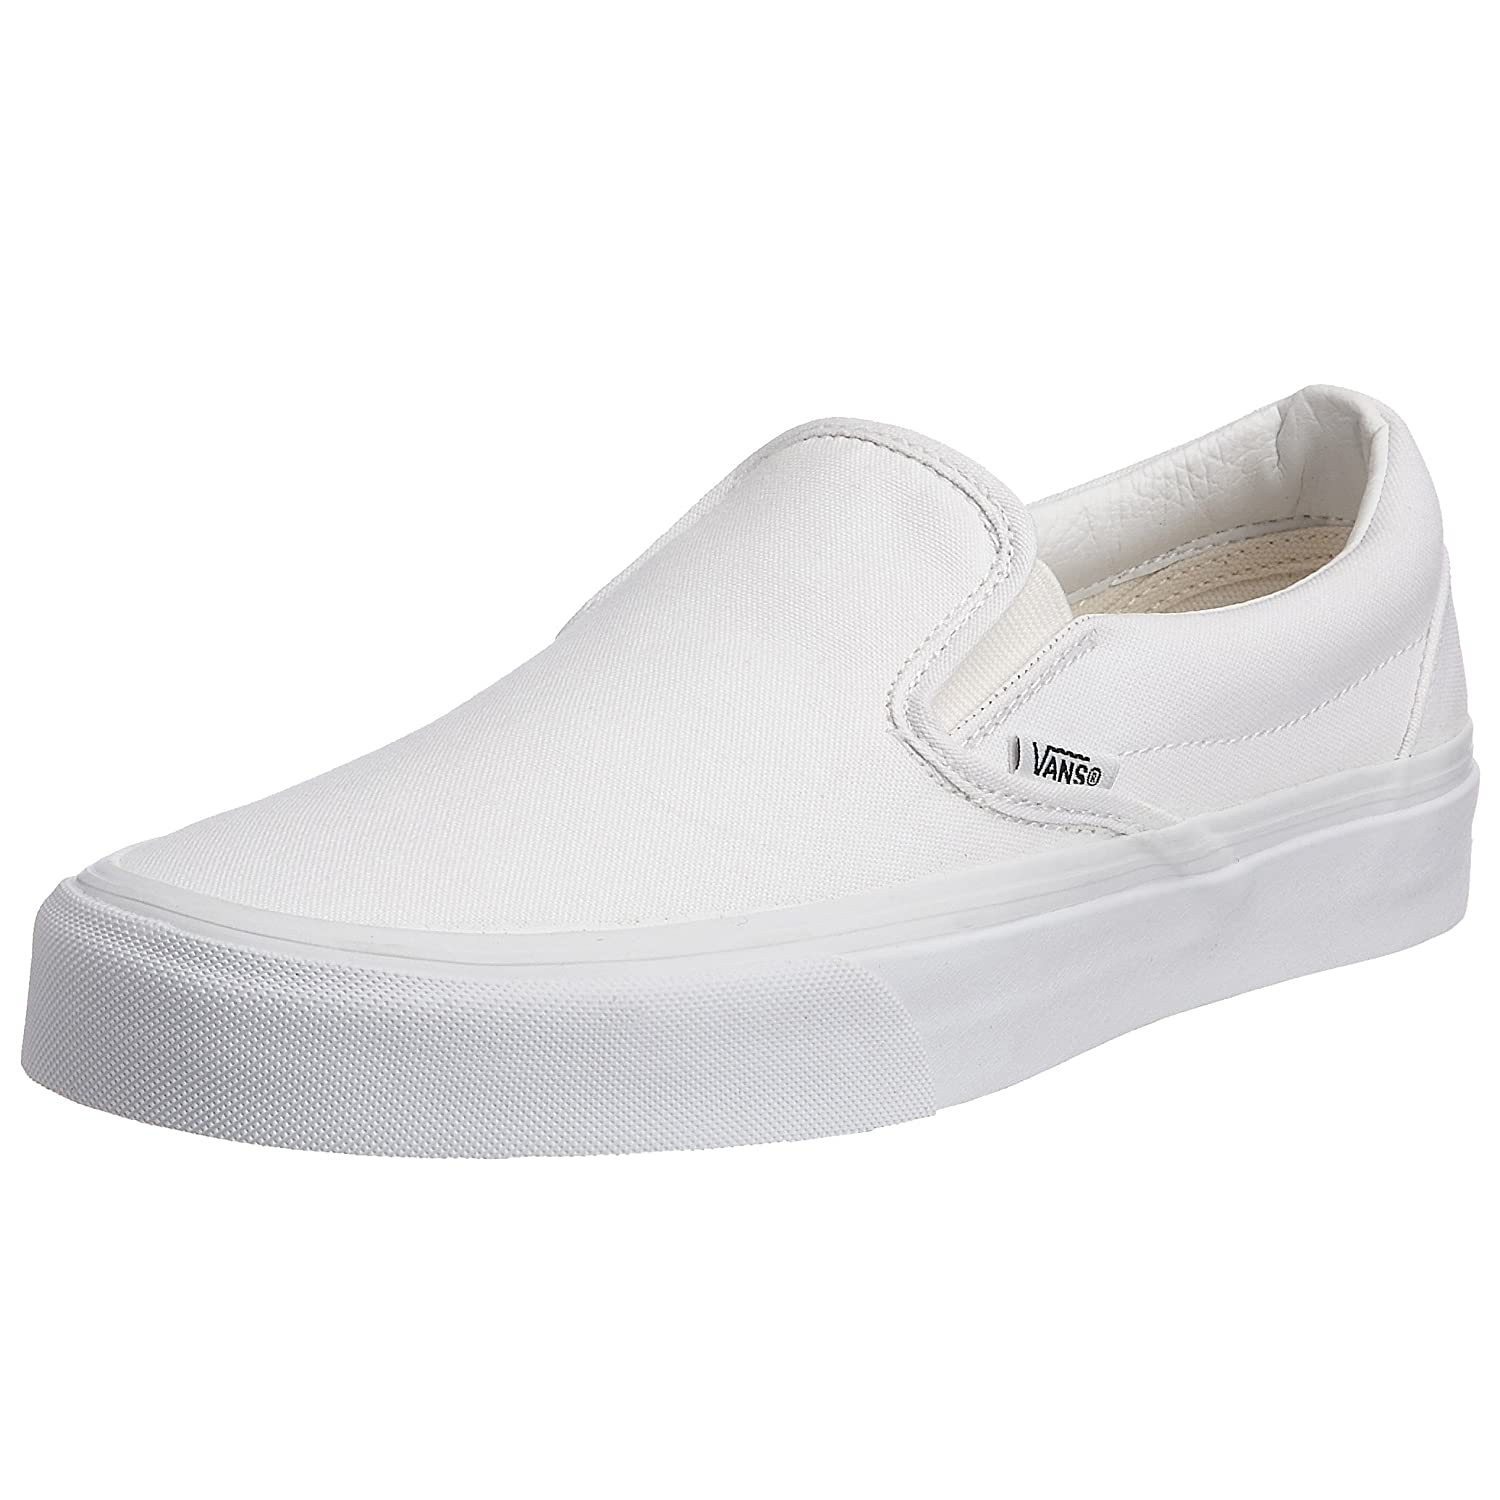 Vans Unisex Classic (Checkerboard) Slip-On Skate Shoe 10 M US Women / 8.5 M US Men|True White